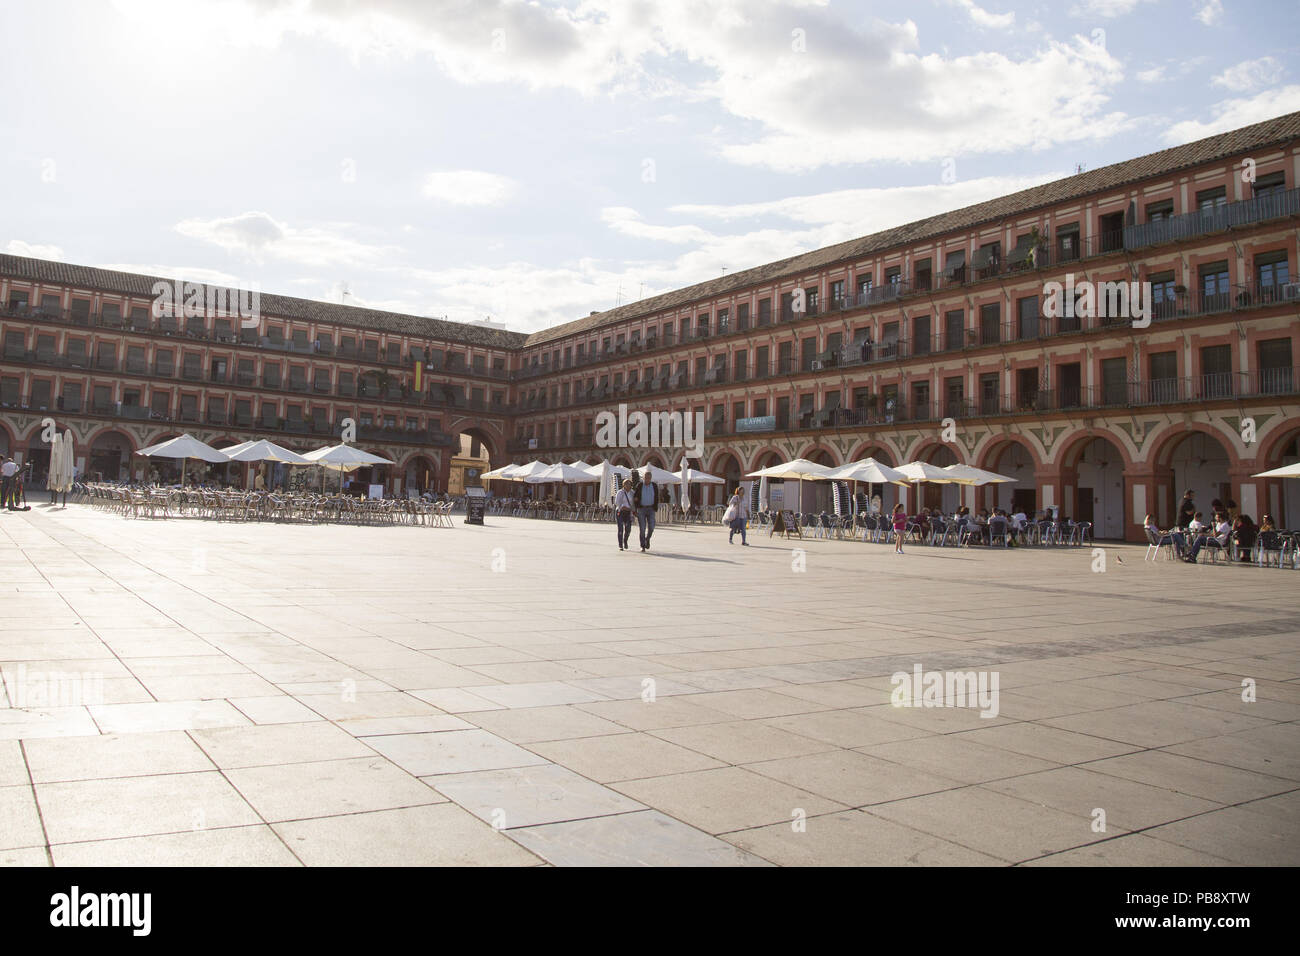 June 10, 2018 - CóRdoba, Spain - Plaza Mayor of Córdoba.Córdoba was the capital of the Later Hispania in the times of the Roman Republic, or of the Bética province during the Roman Empire and the Caliphate of Córdoba during the Muslim era. Credit: Lito Lizana/SOPA Images/ZUMA Wire/Alamy Live News Stock Photo